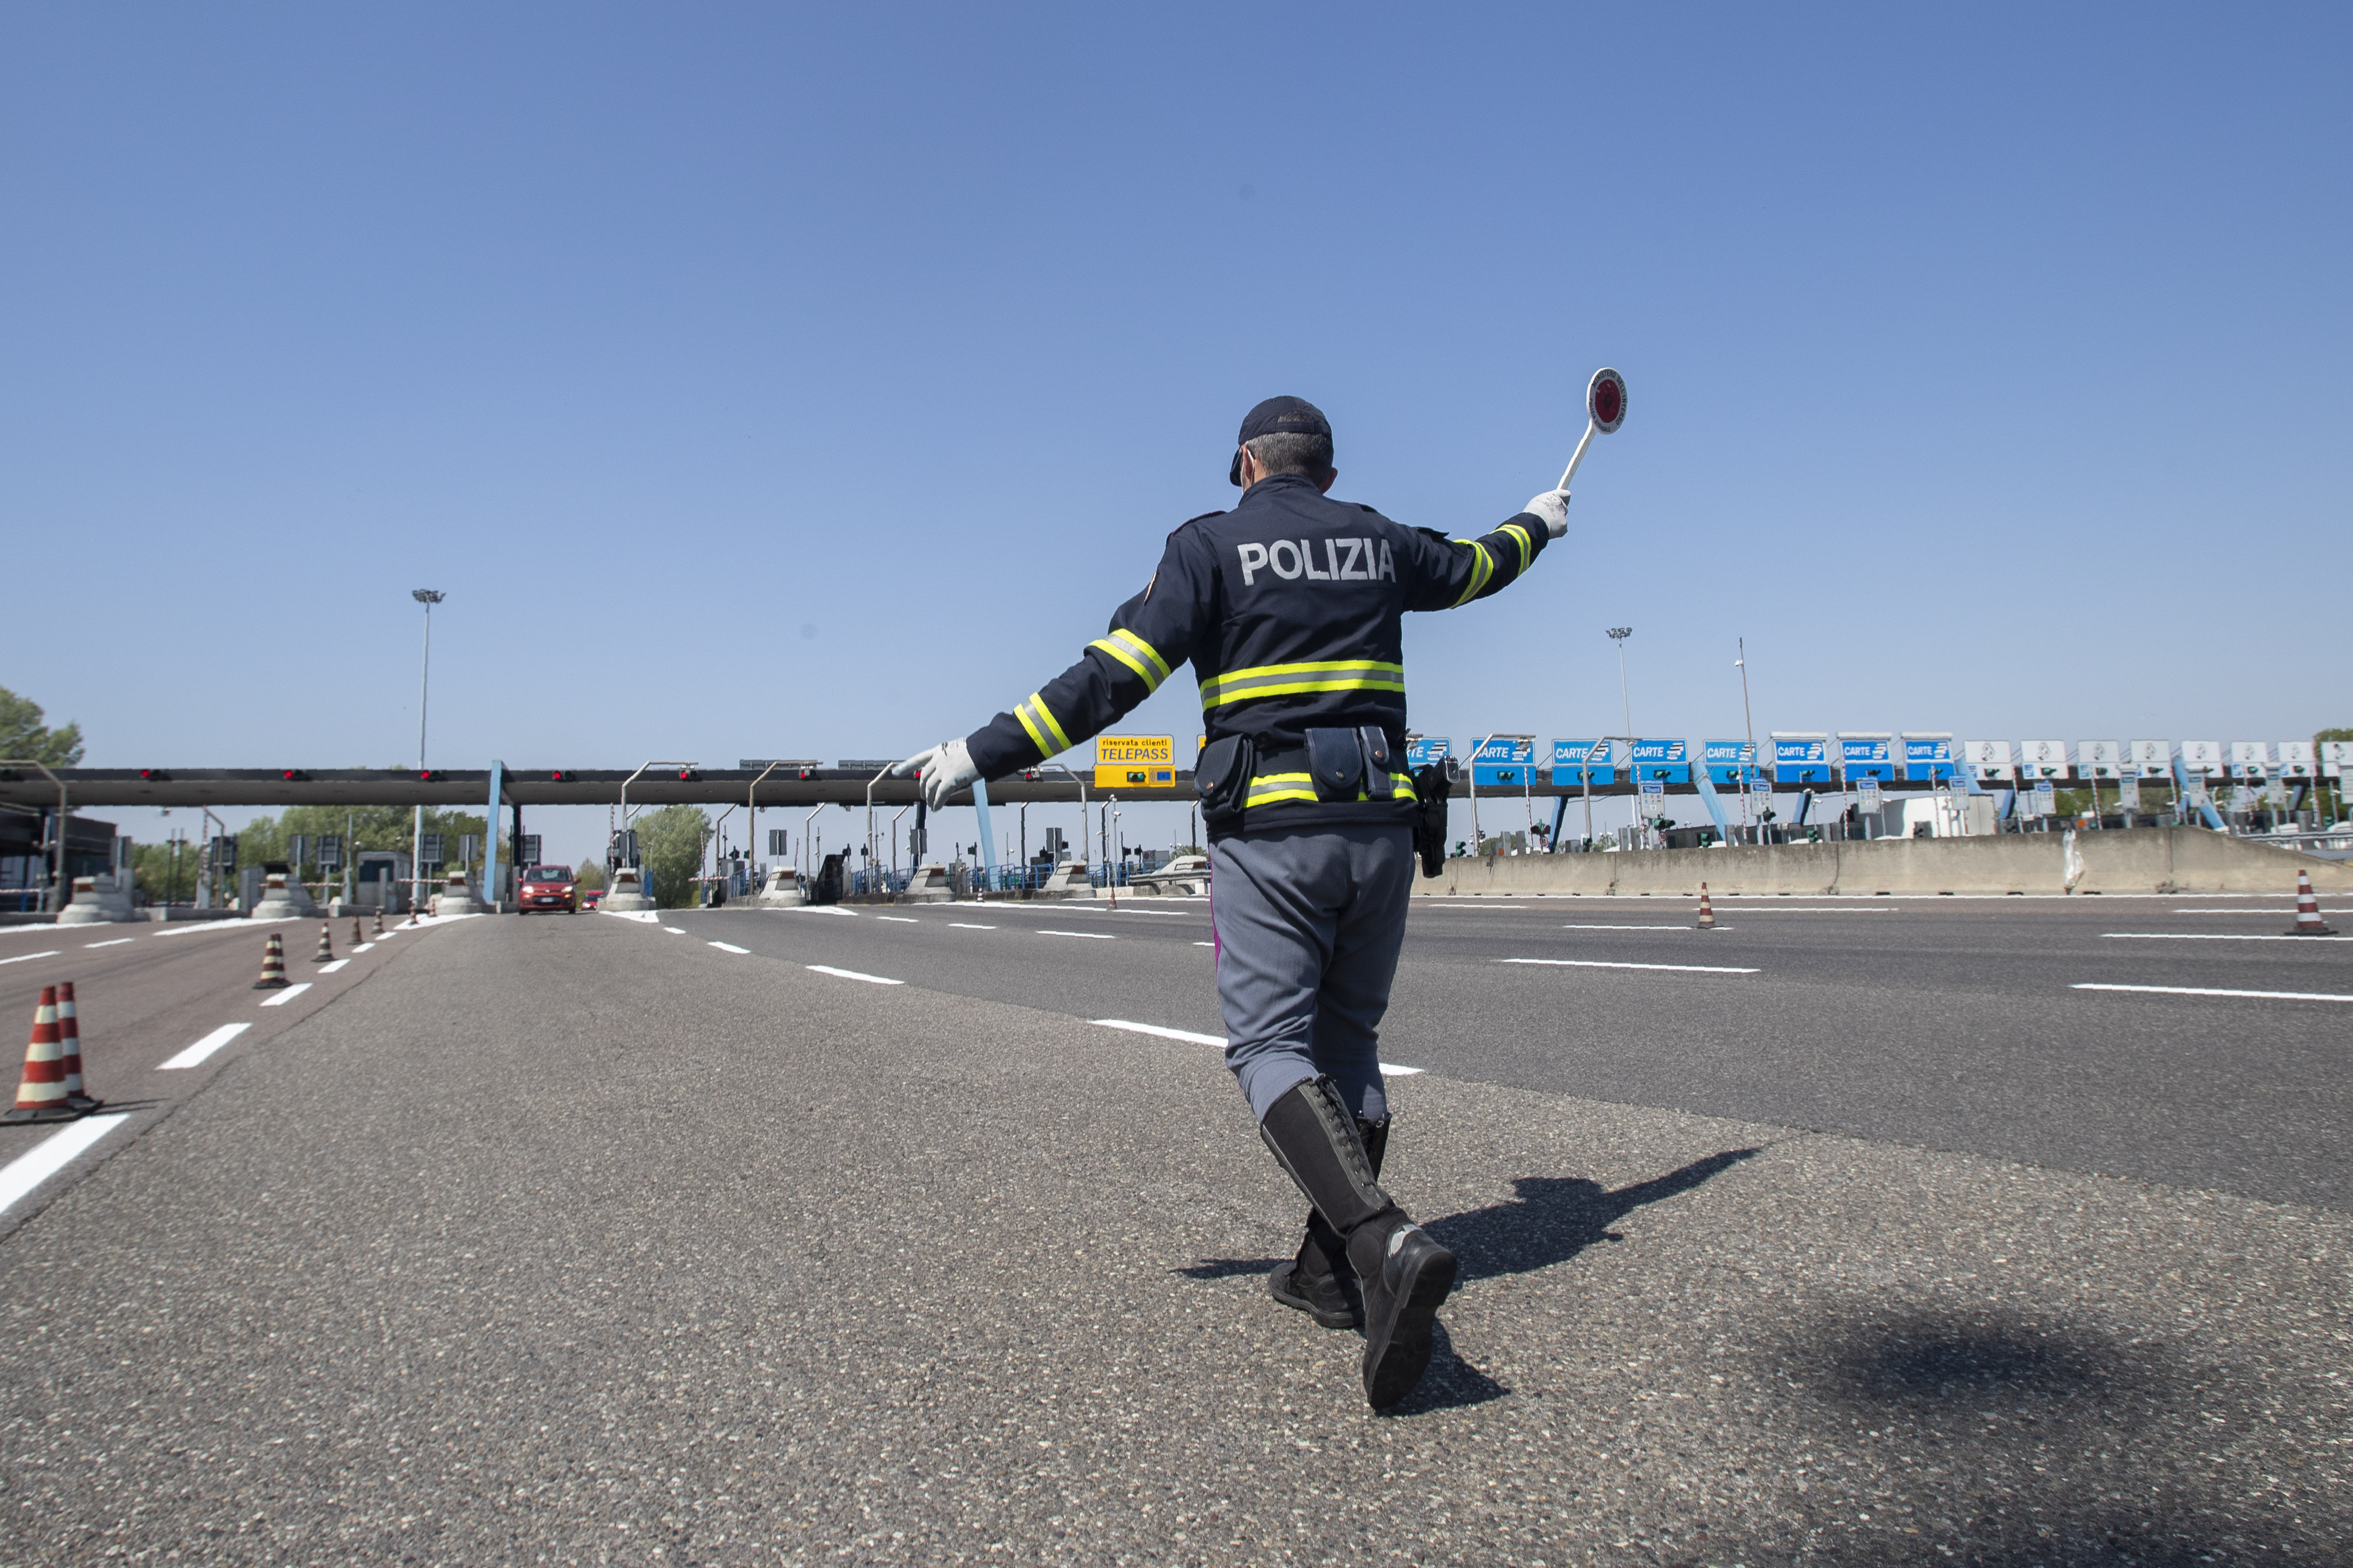 Police officers stop cars at the Melegnano highway barrier entrance, near Milan, Italy, Saturday, April 11, 2020. Using helicopters, drones and stepped-up police checks to make sure Italians don't slip out of their homes for the Easter holiday weekend, Italian authorities are doubling down on their crackdown against violators of the nationwide lockdown decree. The new coronavirus causes mild or moderate symptoms for most people, but for some, especially older adults and people with existing health problems, it can cause more severe illness or death. (AP Photo/Luca Bruno)